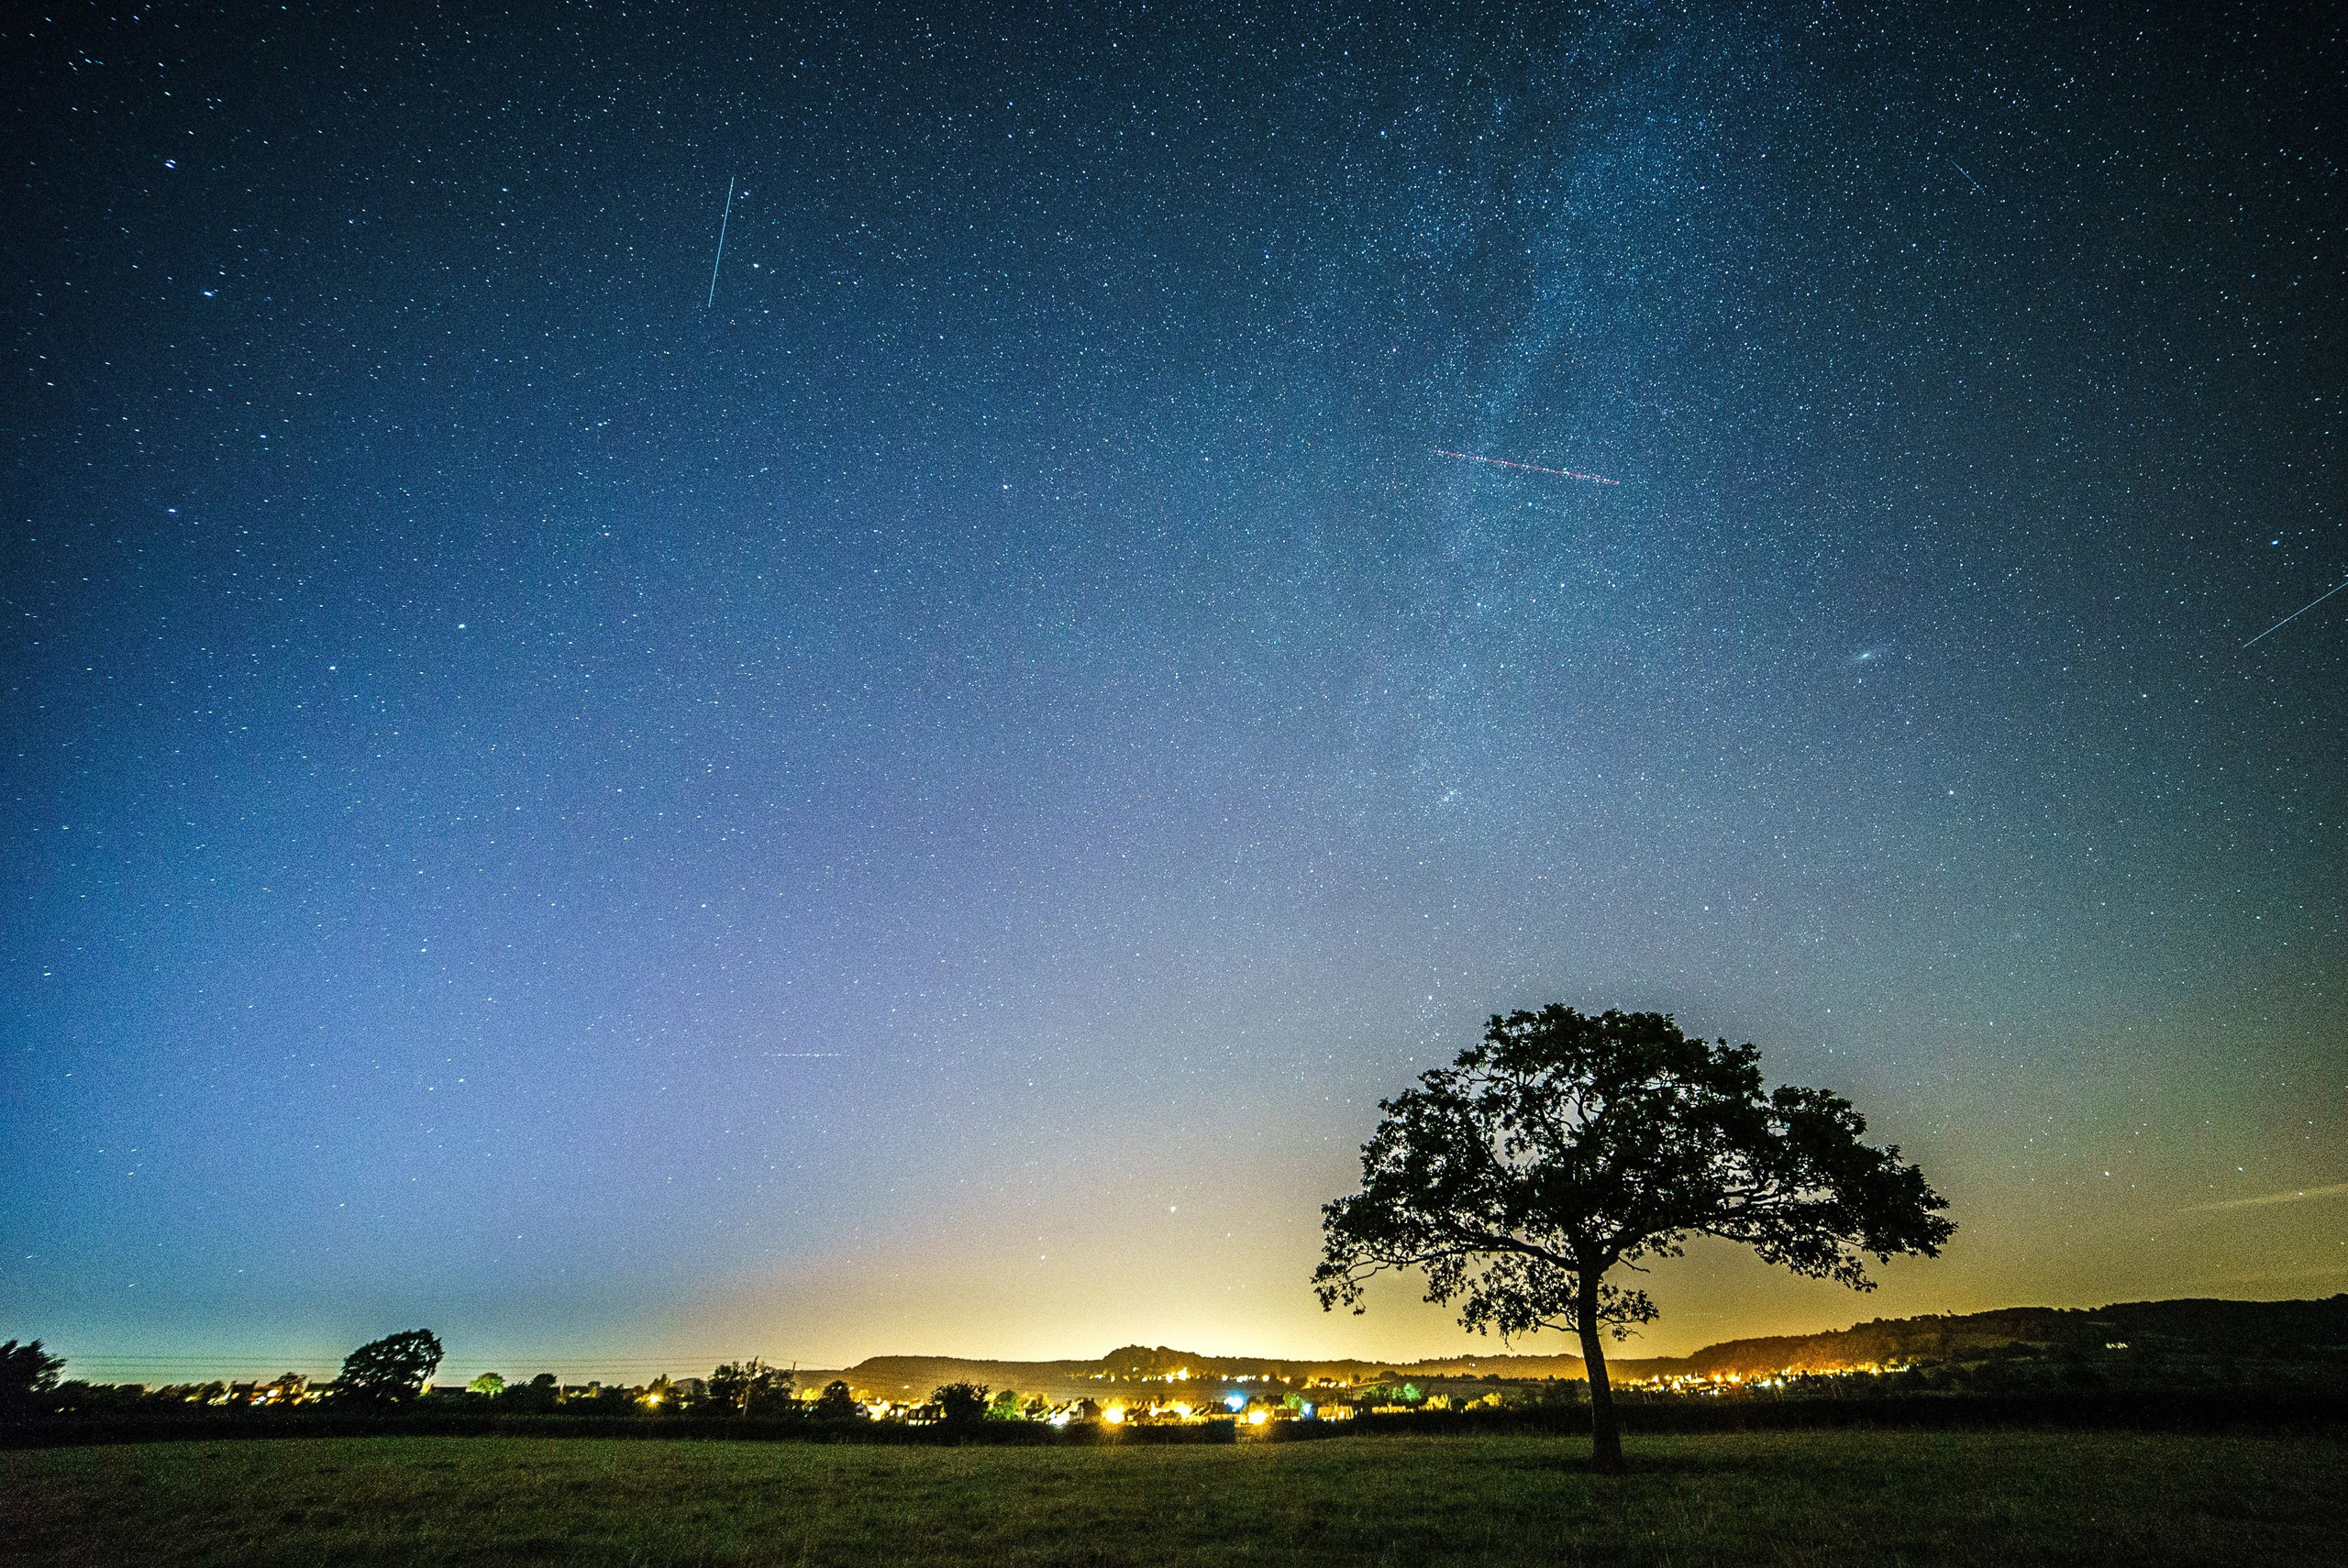 The Perseid meteor shower at Wotton-under-Edge, in Gloucestershire                                   Perseid Meteor Shower, England in August 2015.